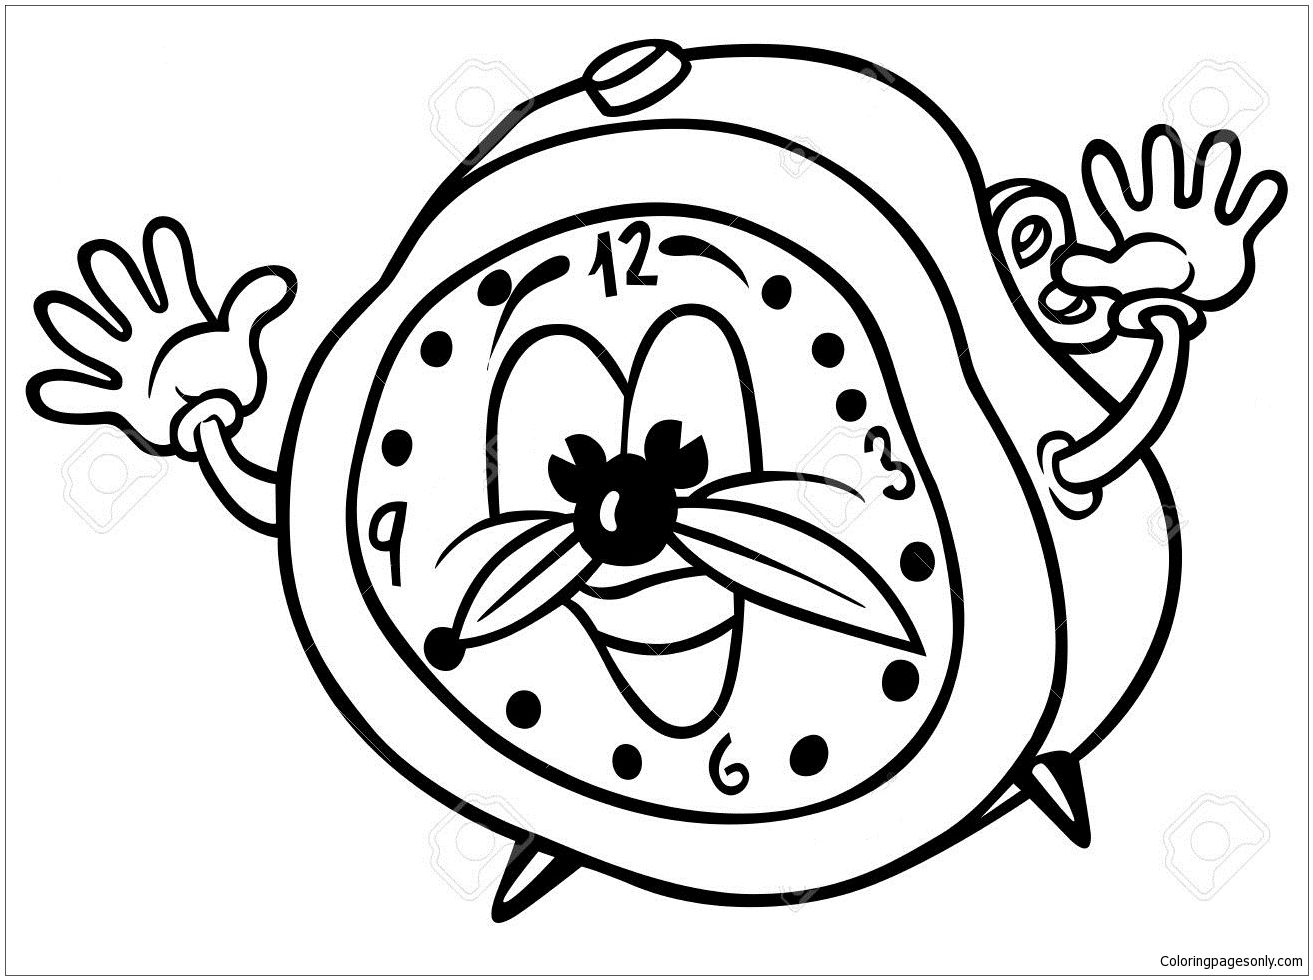 Cartoon Alarm Clock Coloring Page Free Coloring Pages Online